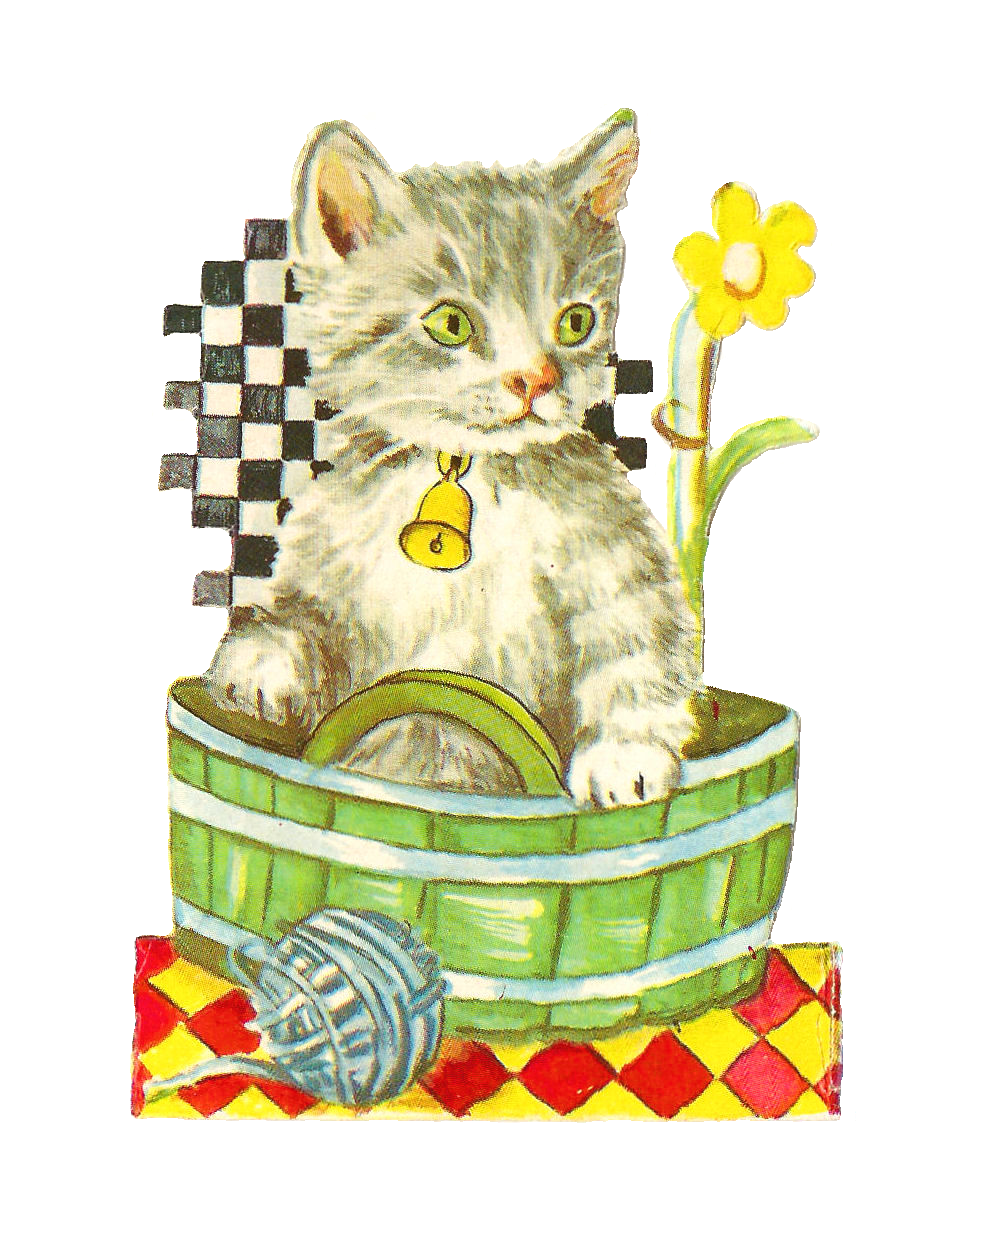 Antique images free animal. Kittens clipart one cat